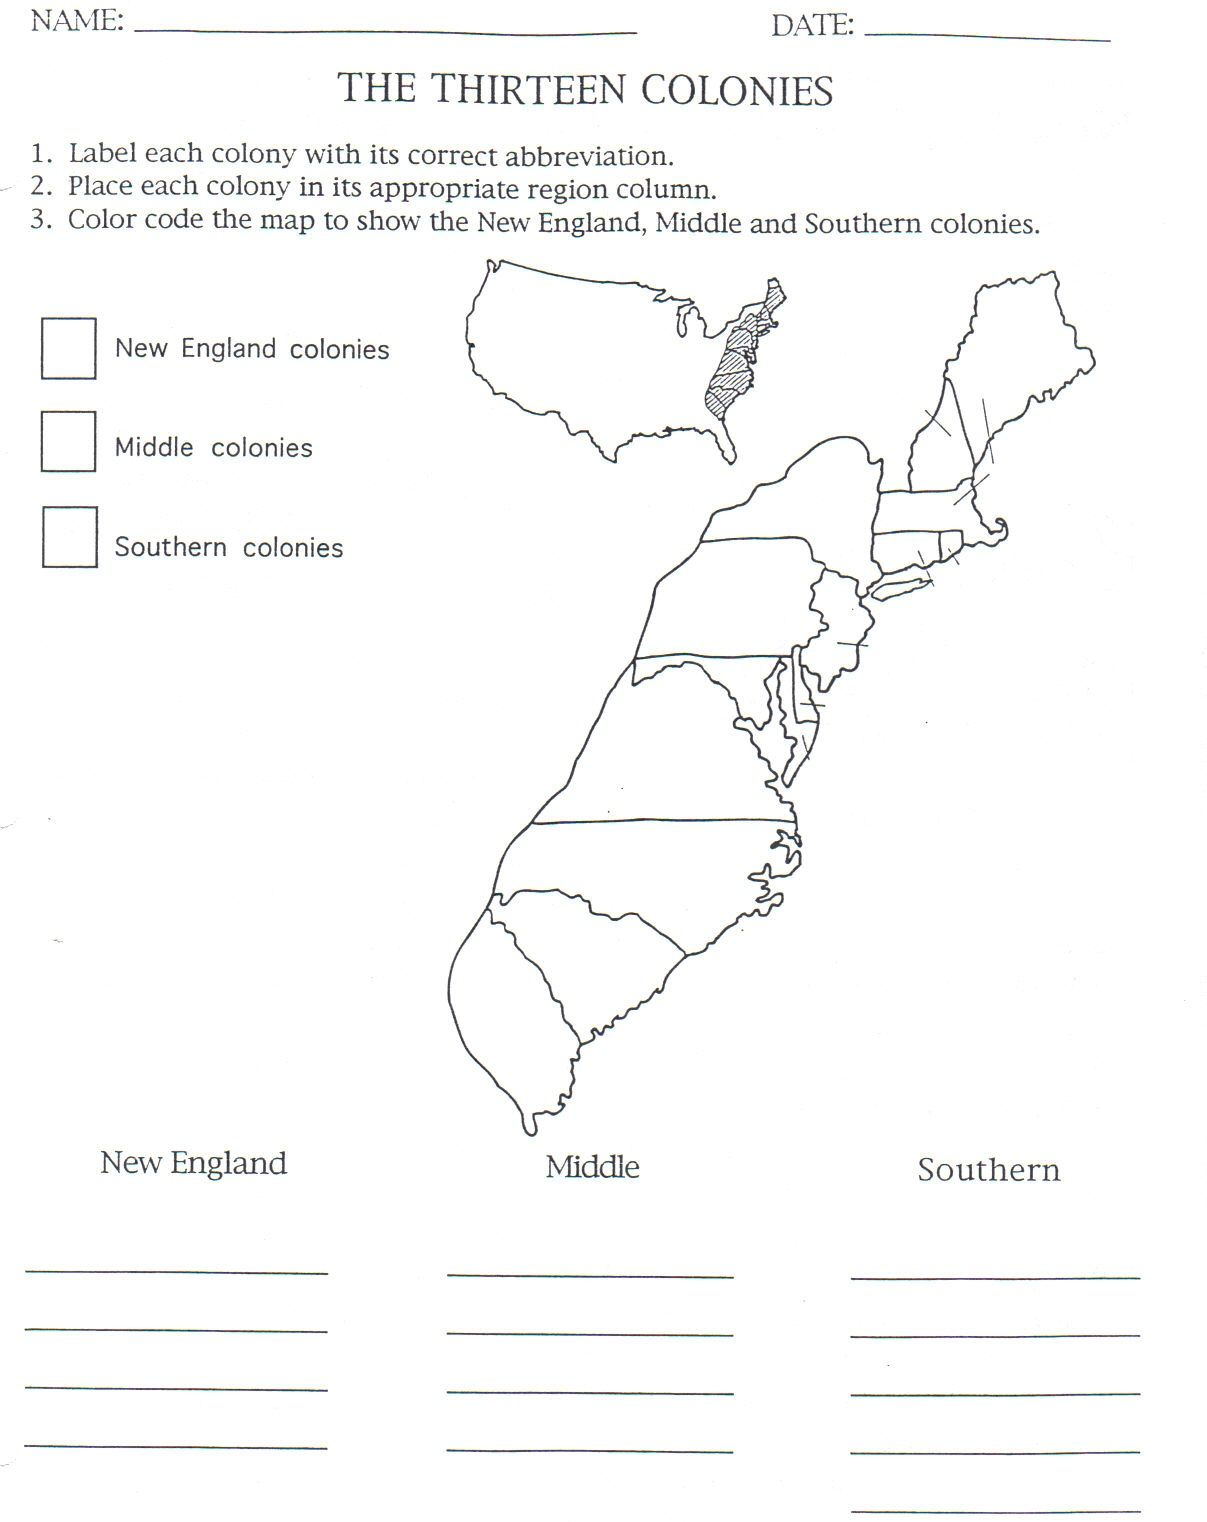 Coloring Pages 13 Colonies Coloring Pages colonial word search student centered resources easy peasy and 13 colonies map to color label although notice that they have maine listed as